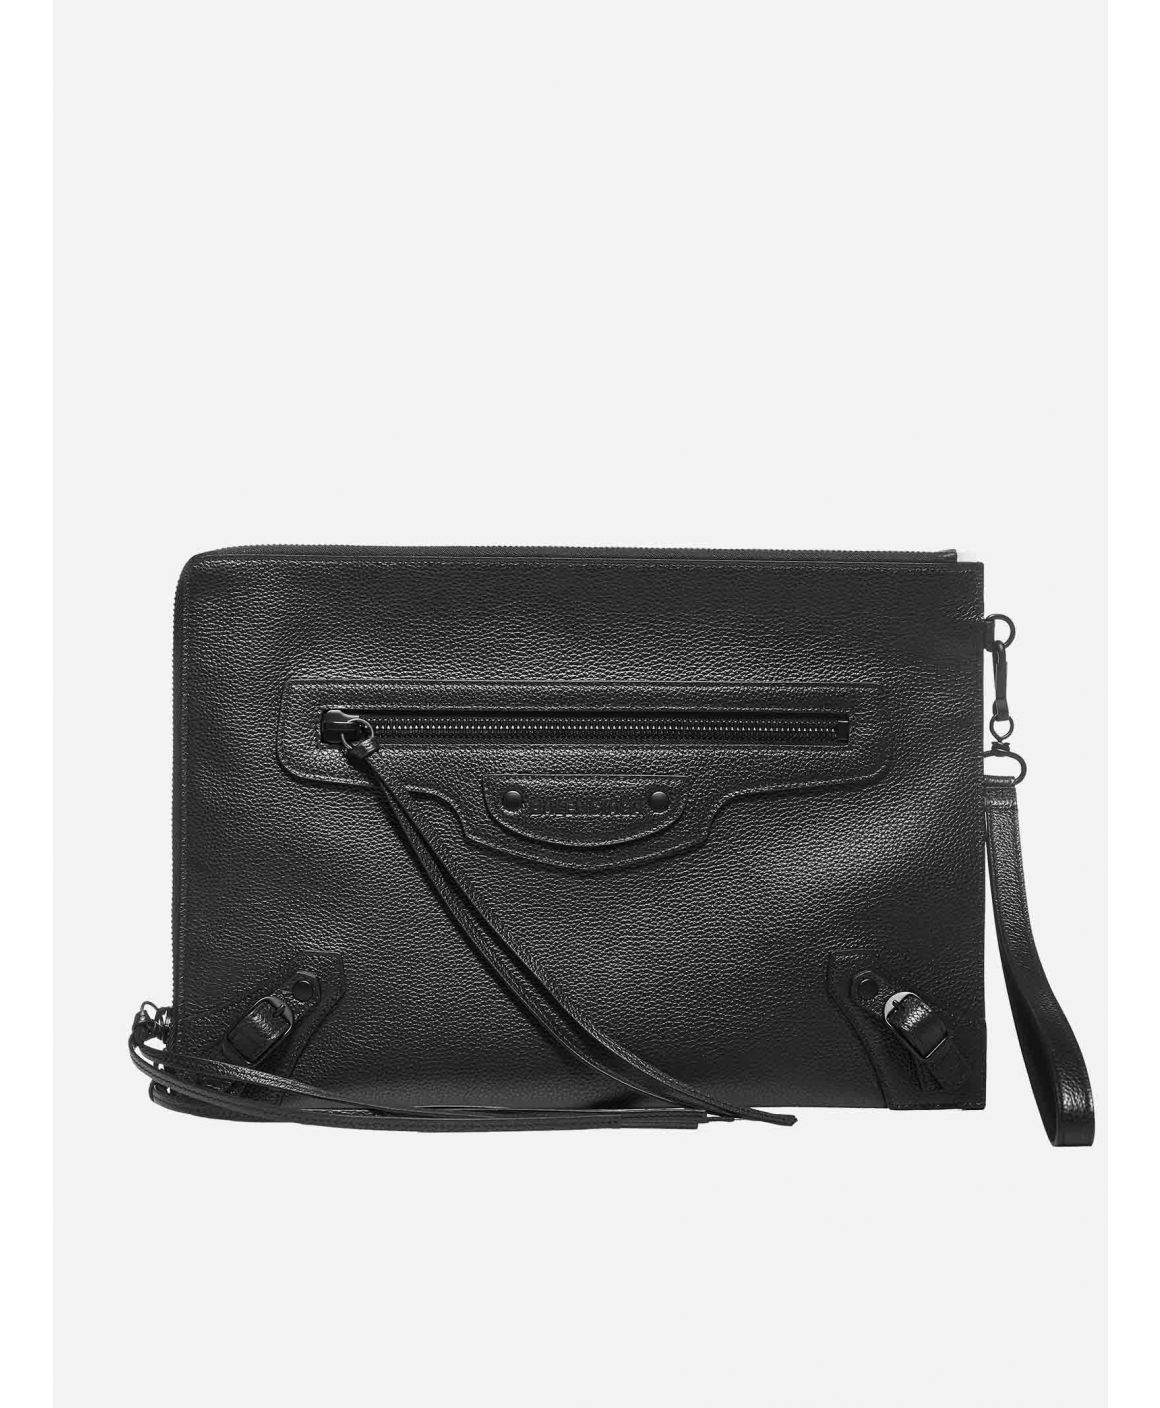 Neo Classic leather pouch